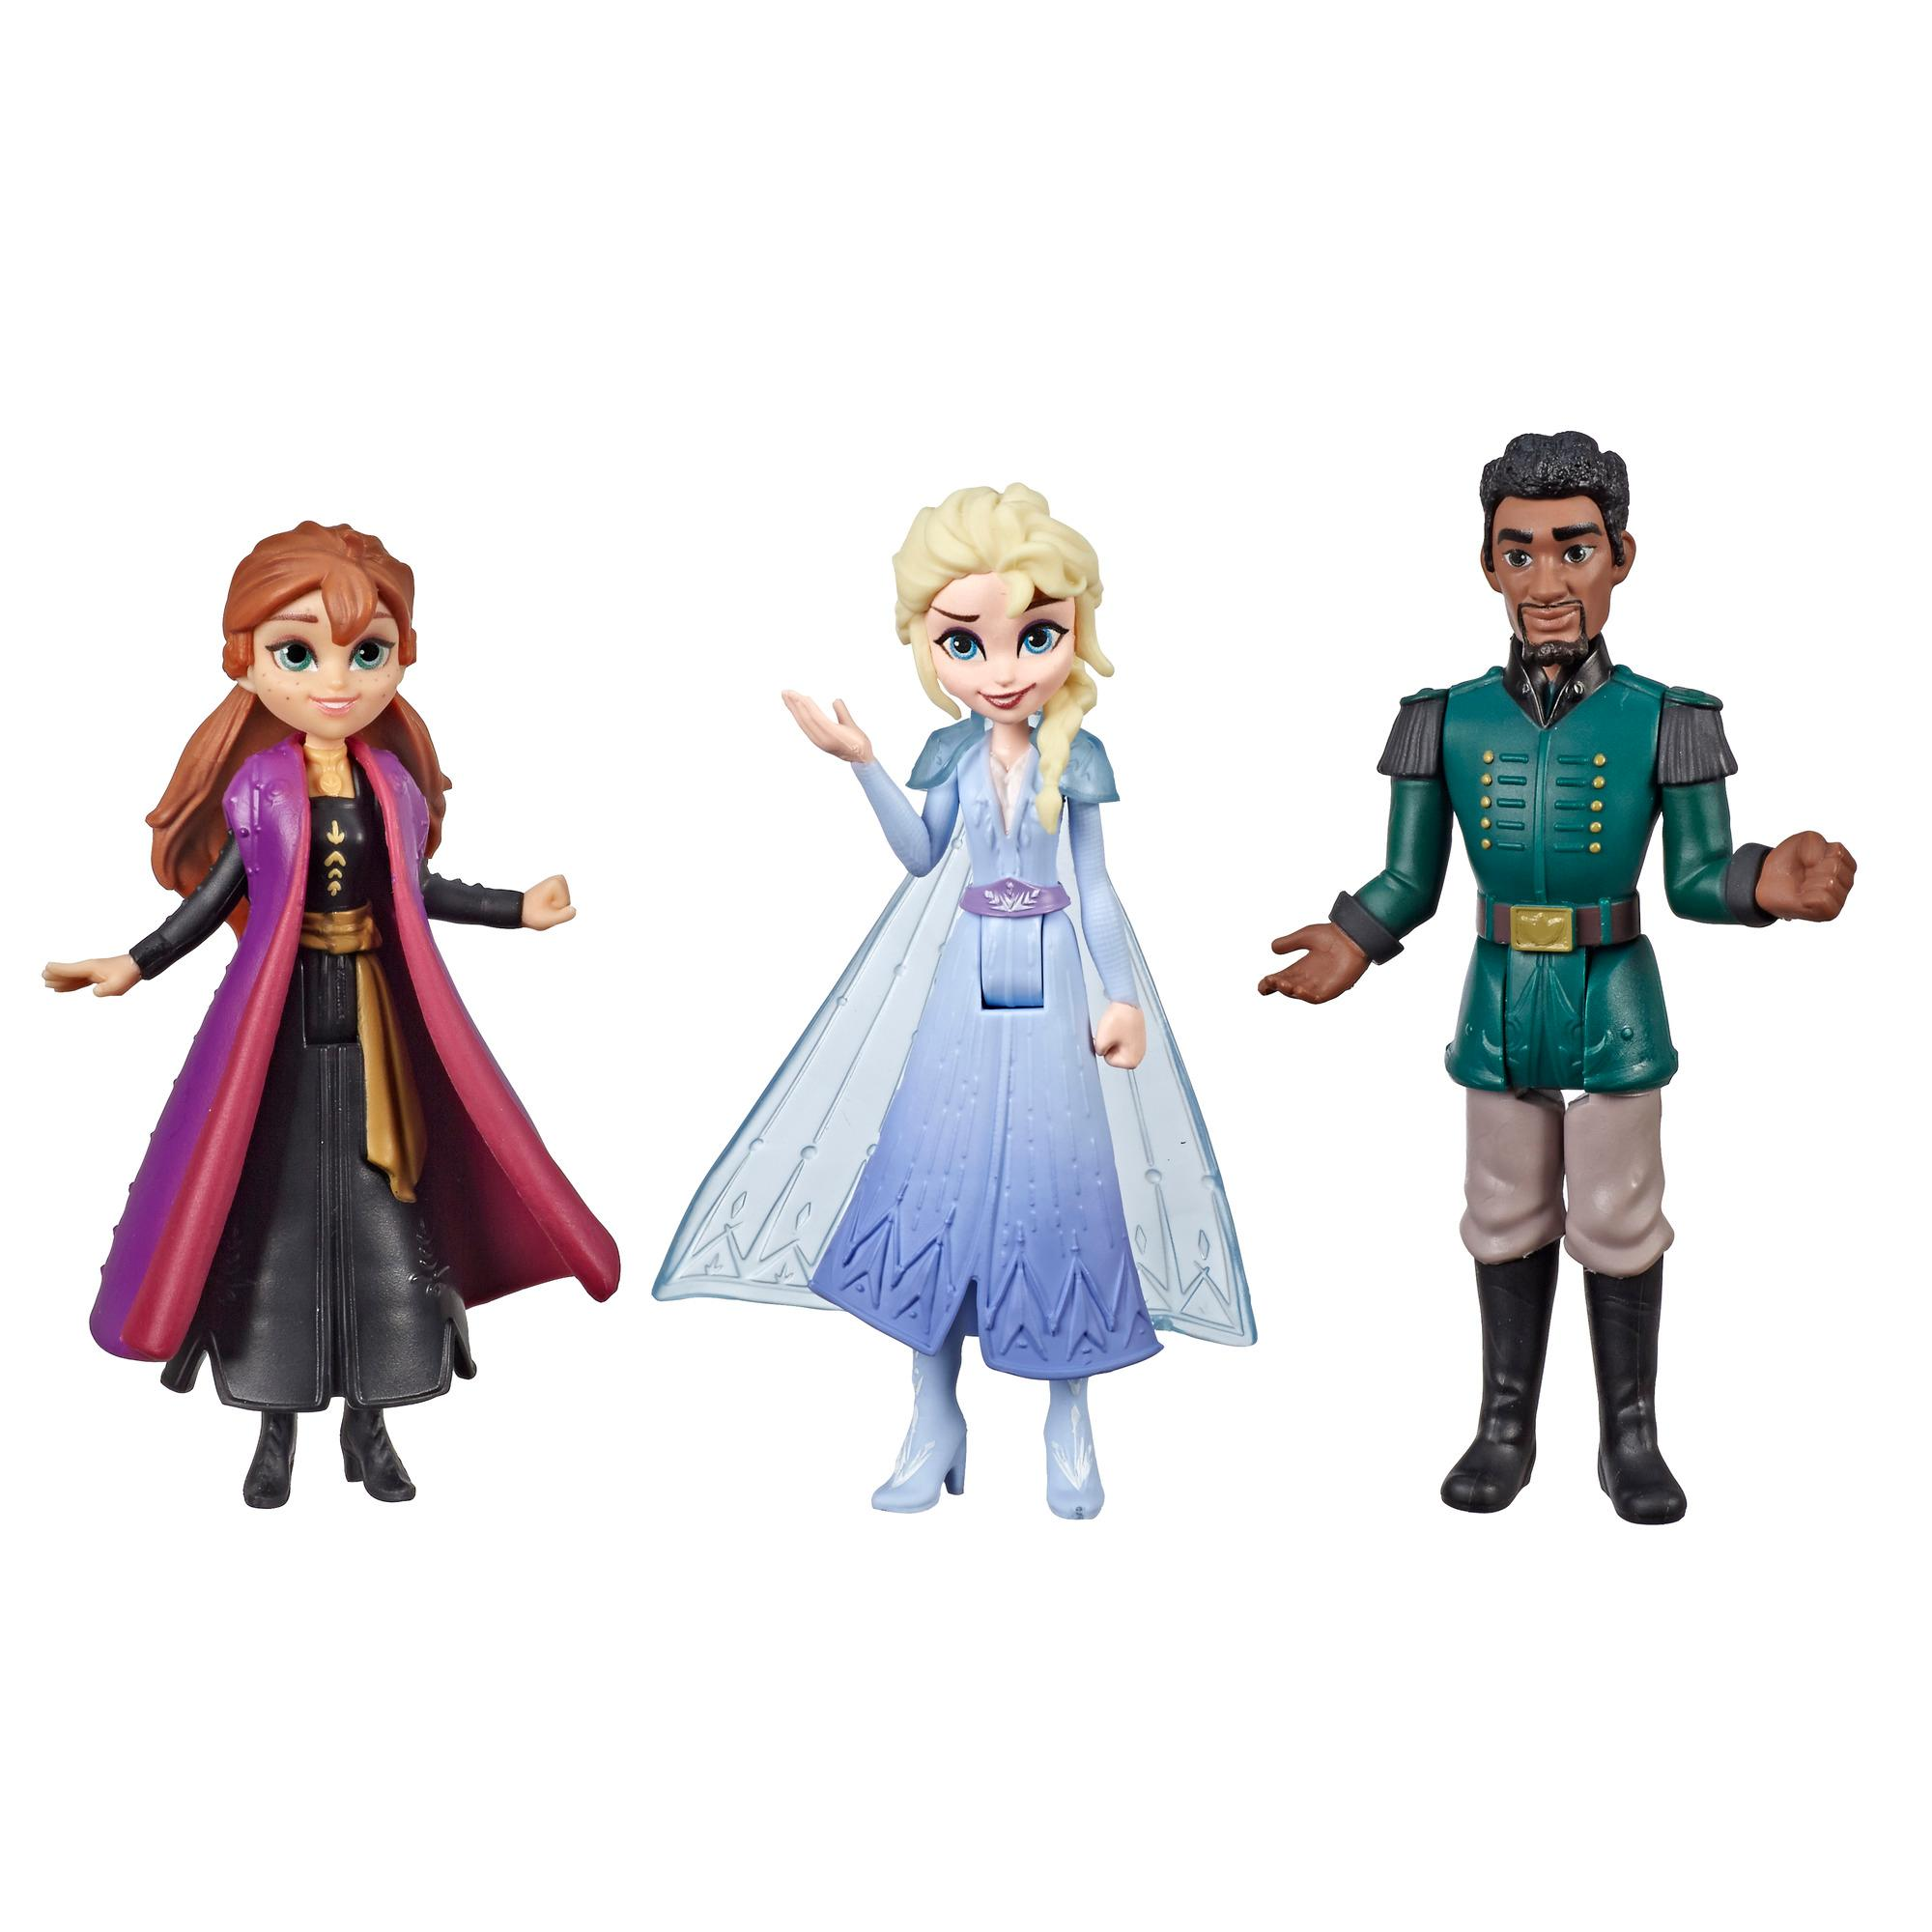 Disney Frozen Anna, Elsa, and Mattias Small Dolls 3-Pack Inspired by the Disney Frozen 2 Movie